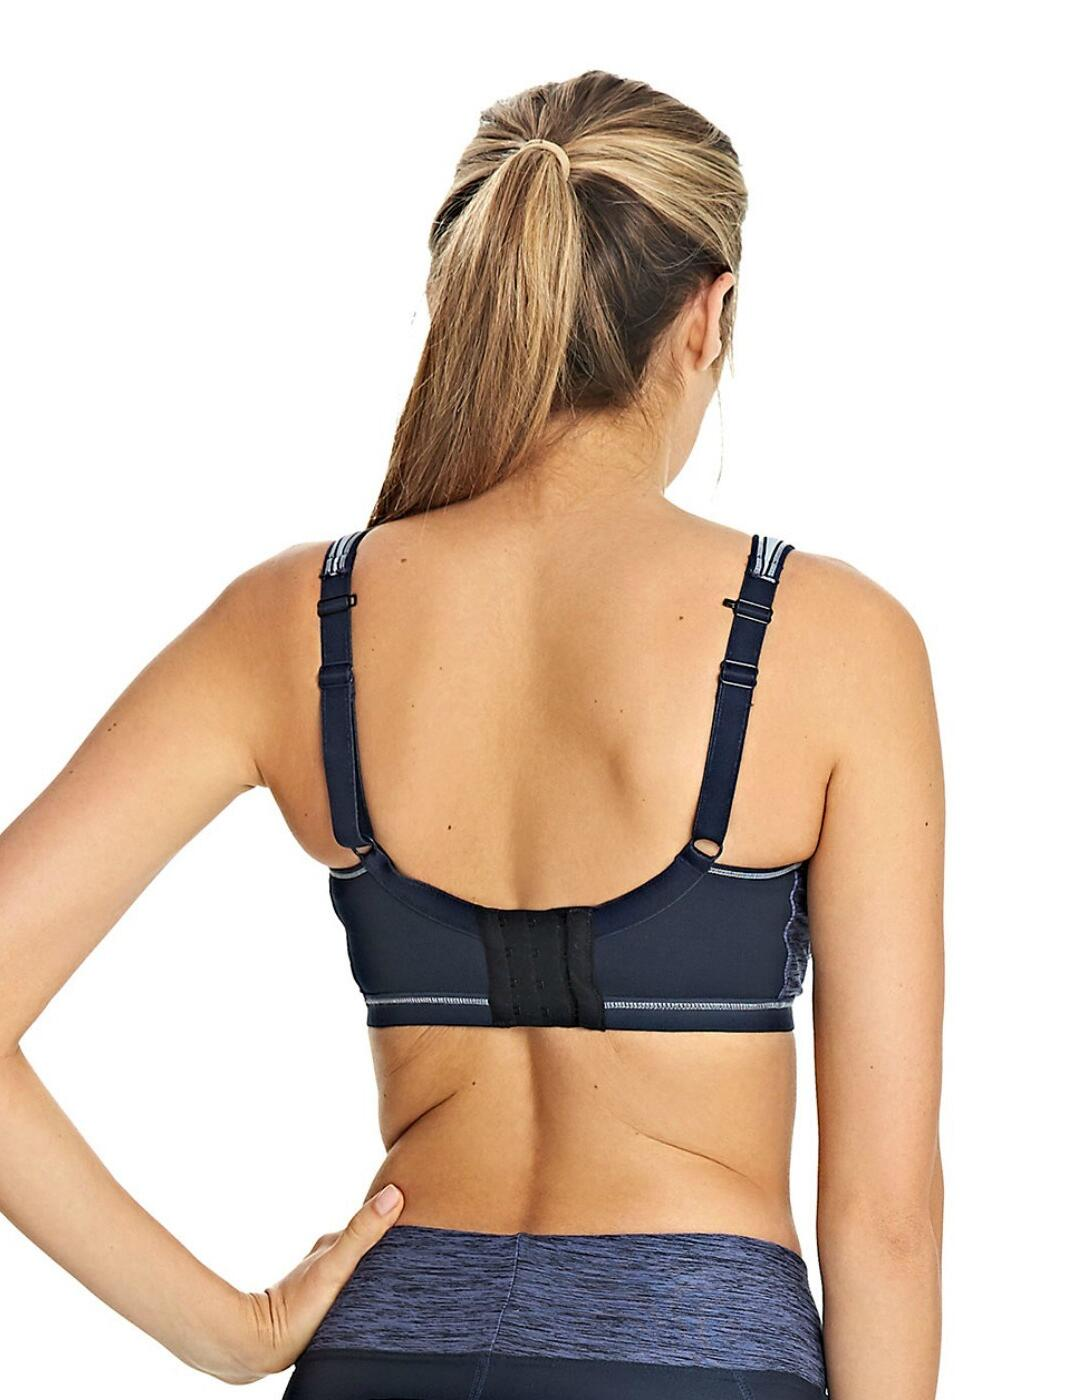 Freya-Active-Epic-Sports-Bra-4004-Underwired-Padded-Moulded-High-Impact-Gym-Bra thumbnail 4